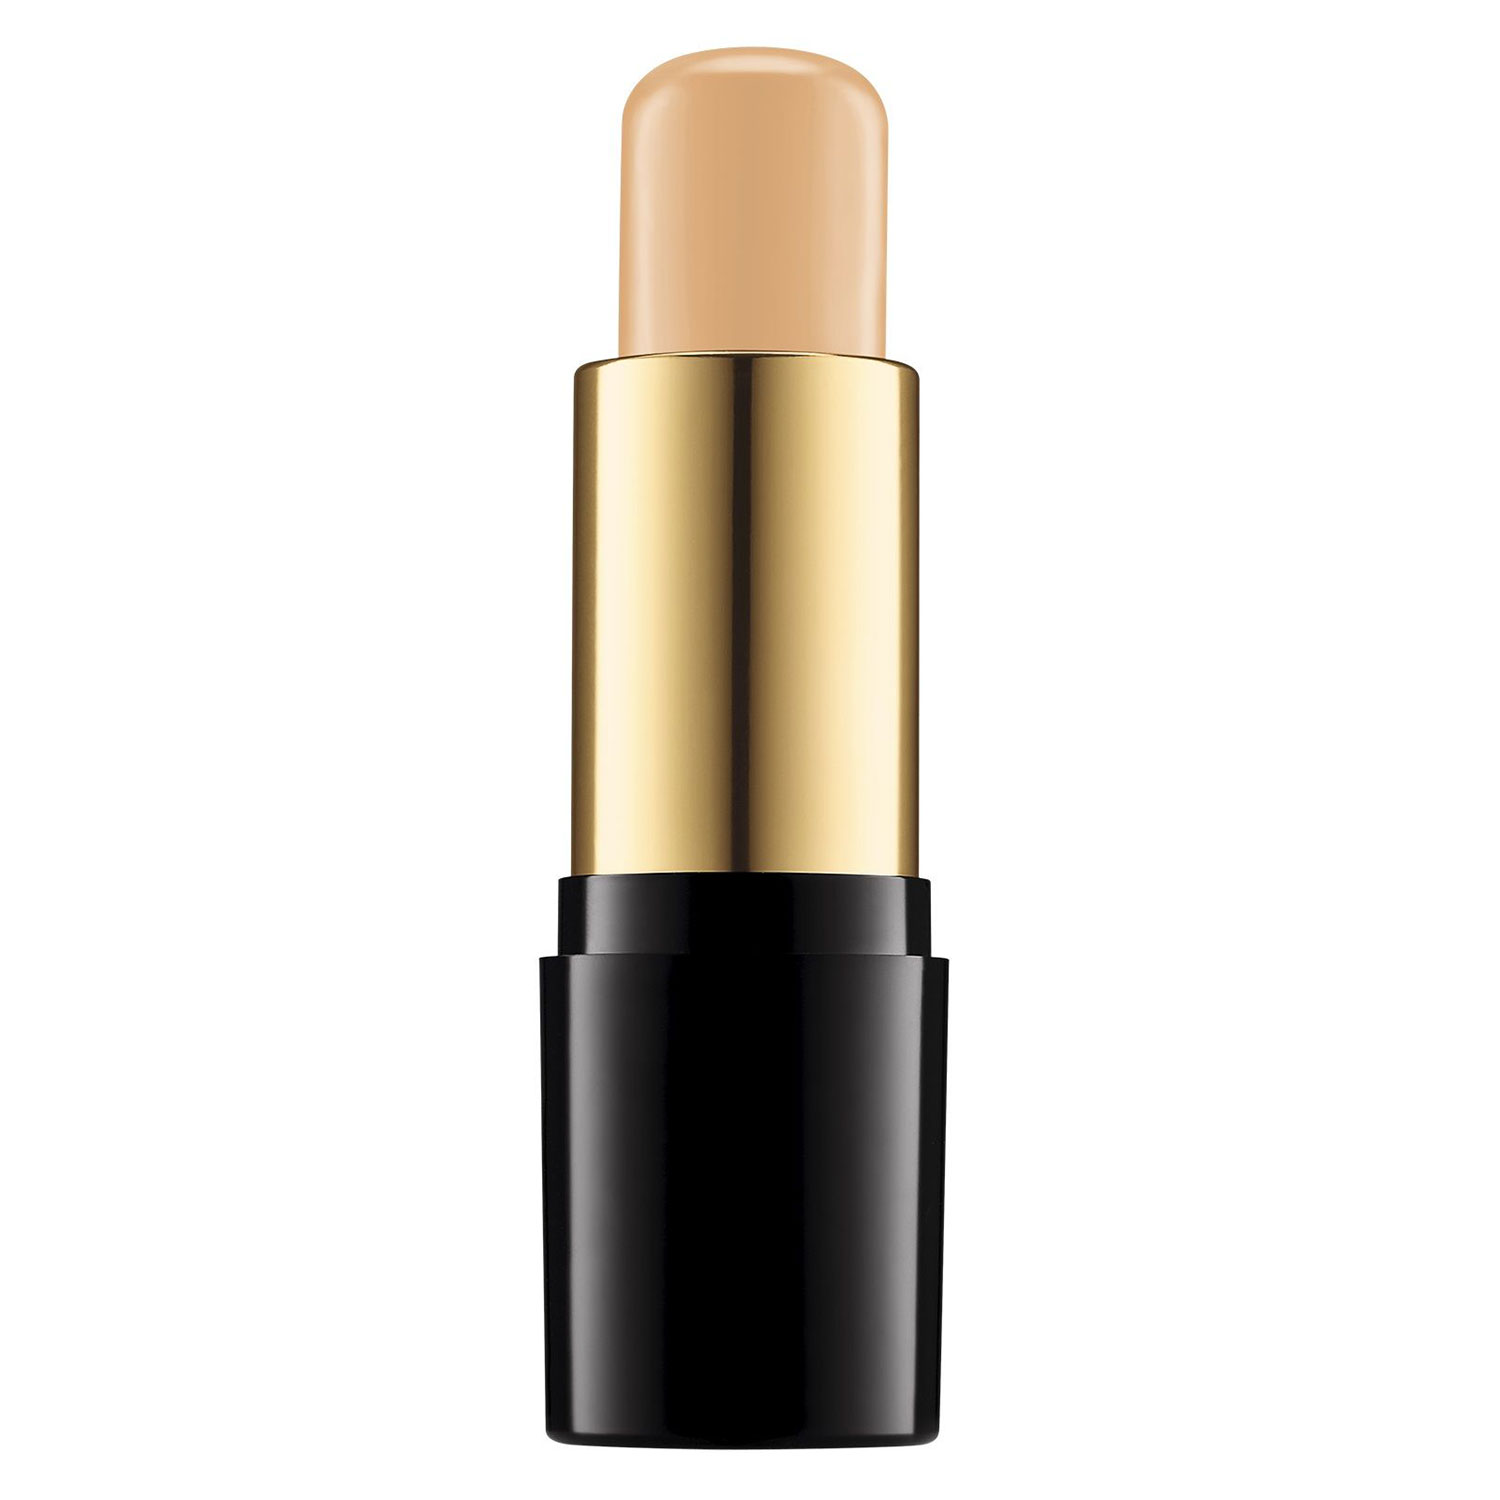 Teint Idole Ultra Wear - Stick Beige Noisette 05